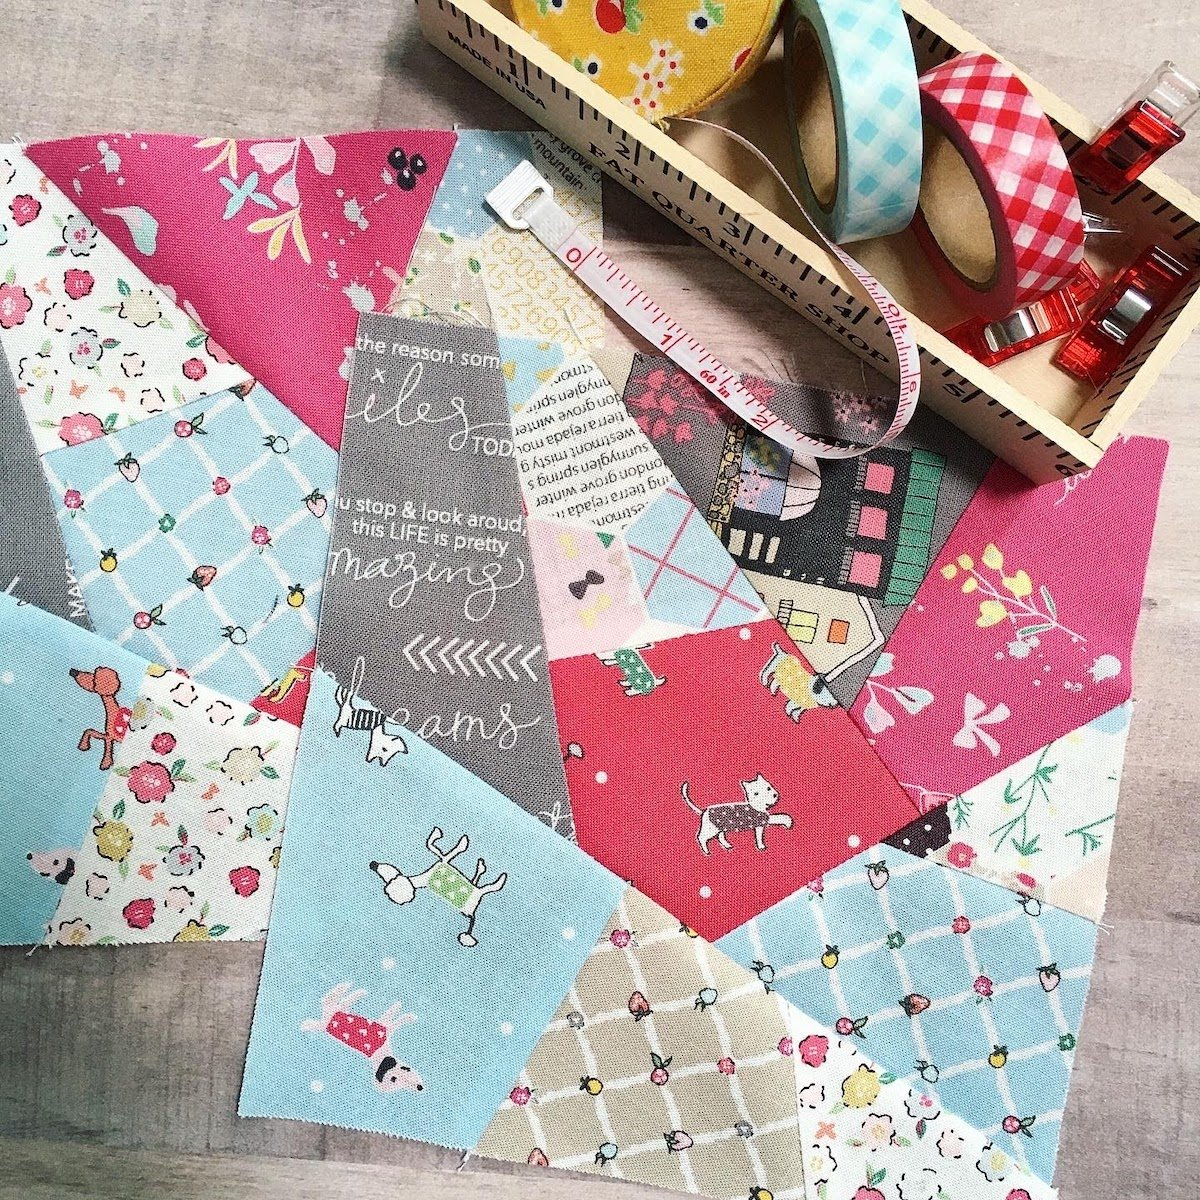 two sewn crazy quilt block six inch finished blocks on concrete table next to printed washi tape quilting clips and sewing ruler